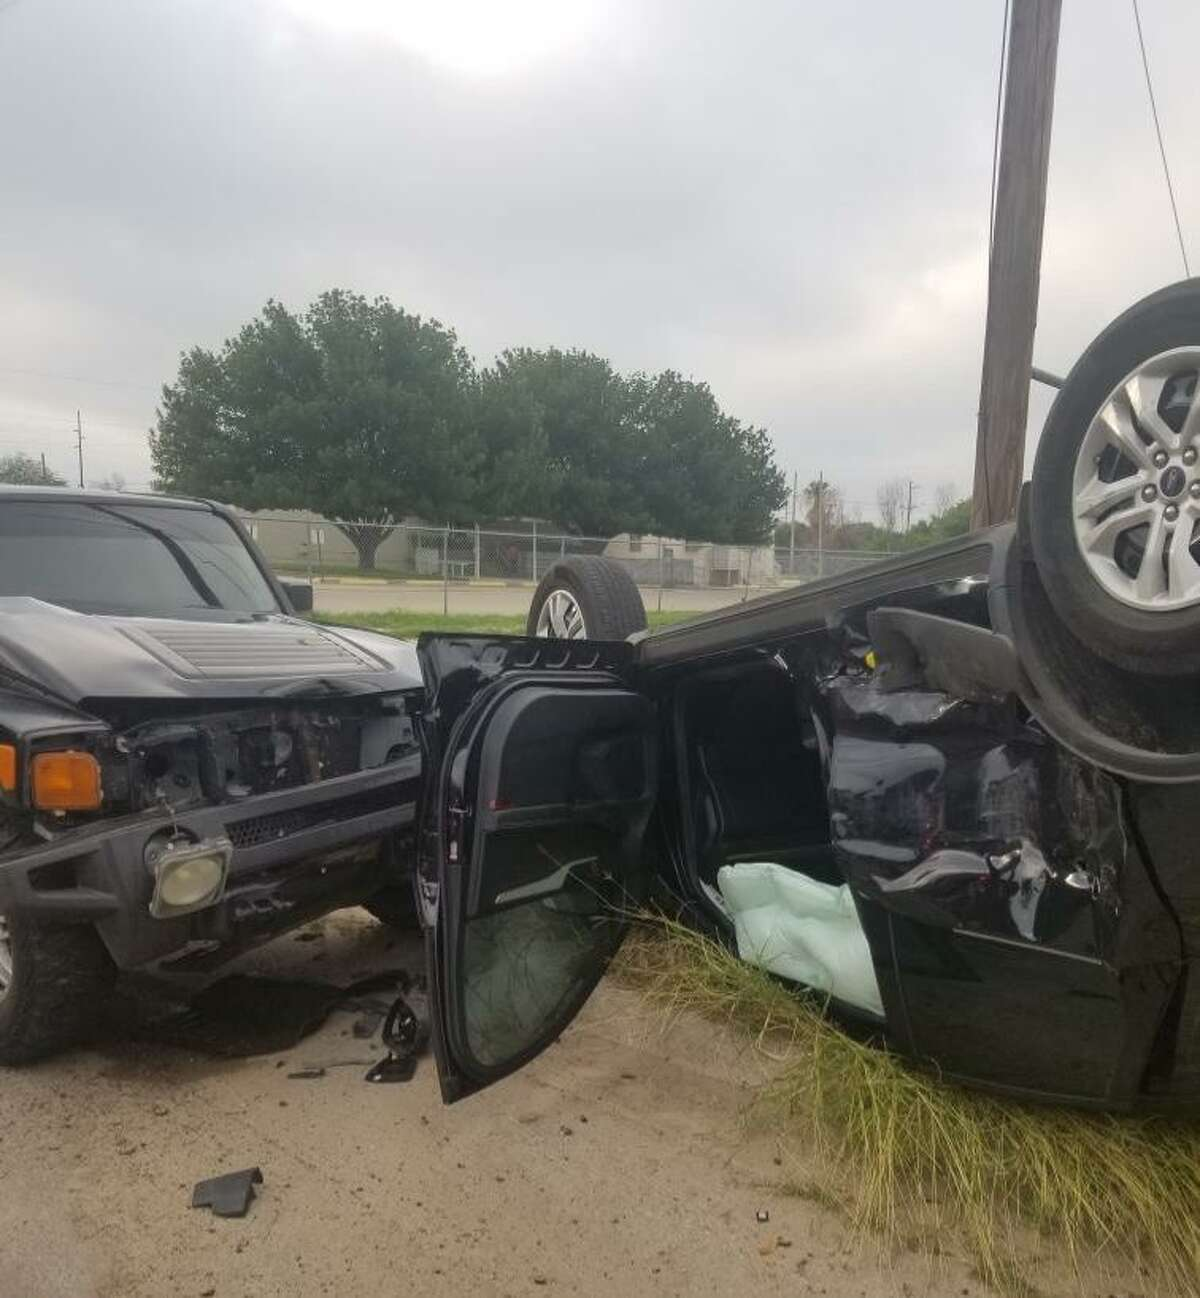 Two people involved in this rollover crash were reported in stable condition. The crash occurred on Monday at the intersection of Valencia Avenue and Frost Street.